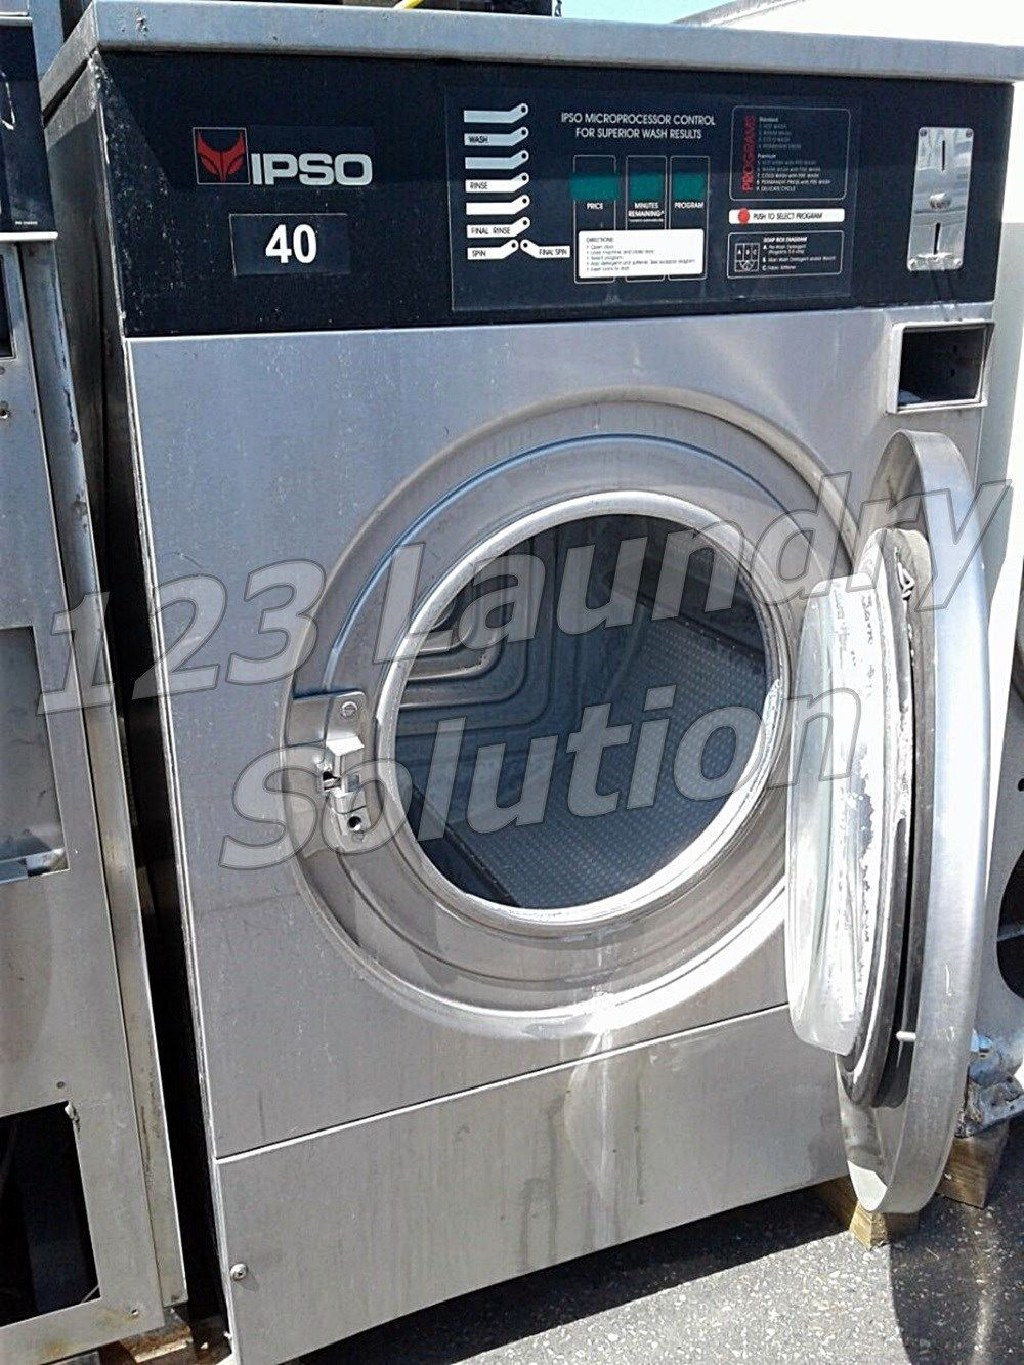 Coin Laundry IPSO Front Load Washer 40LB WE181C 1PH 220V Stainless Steel Finish Used